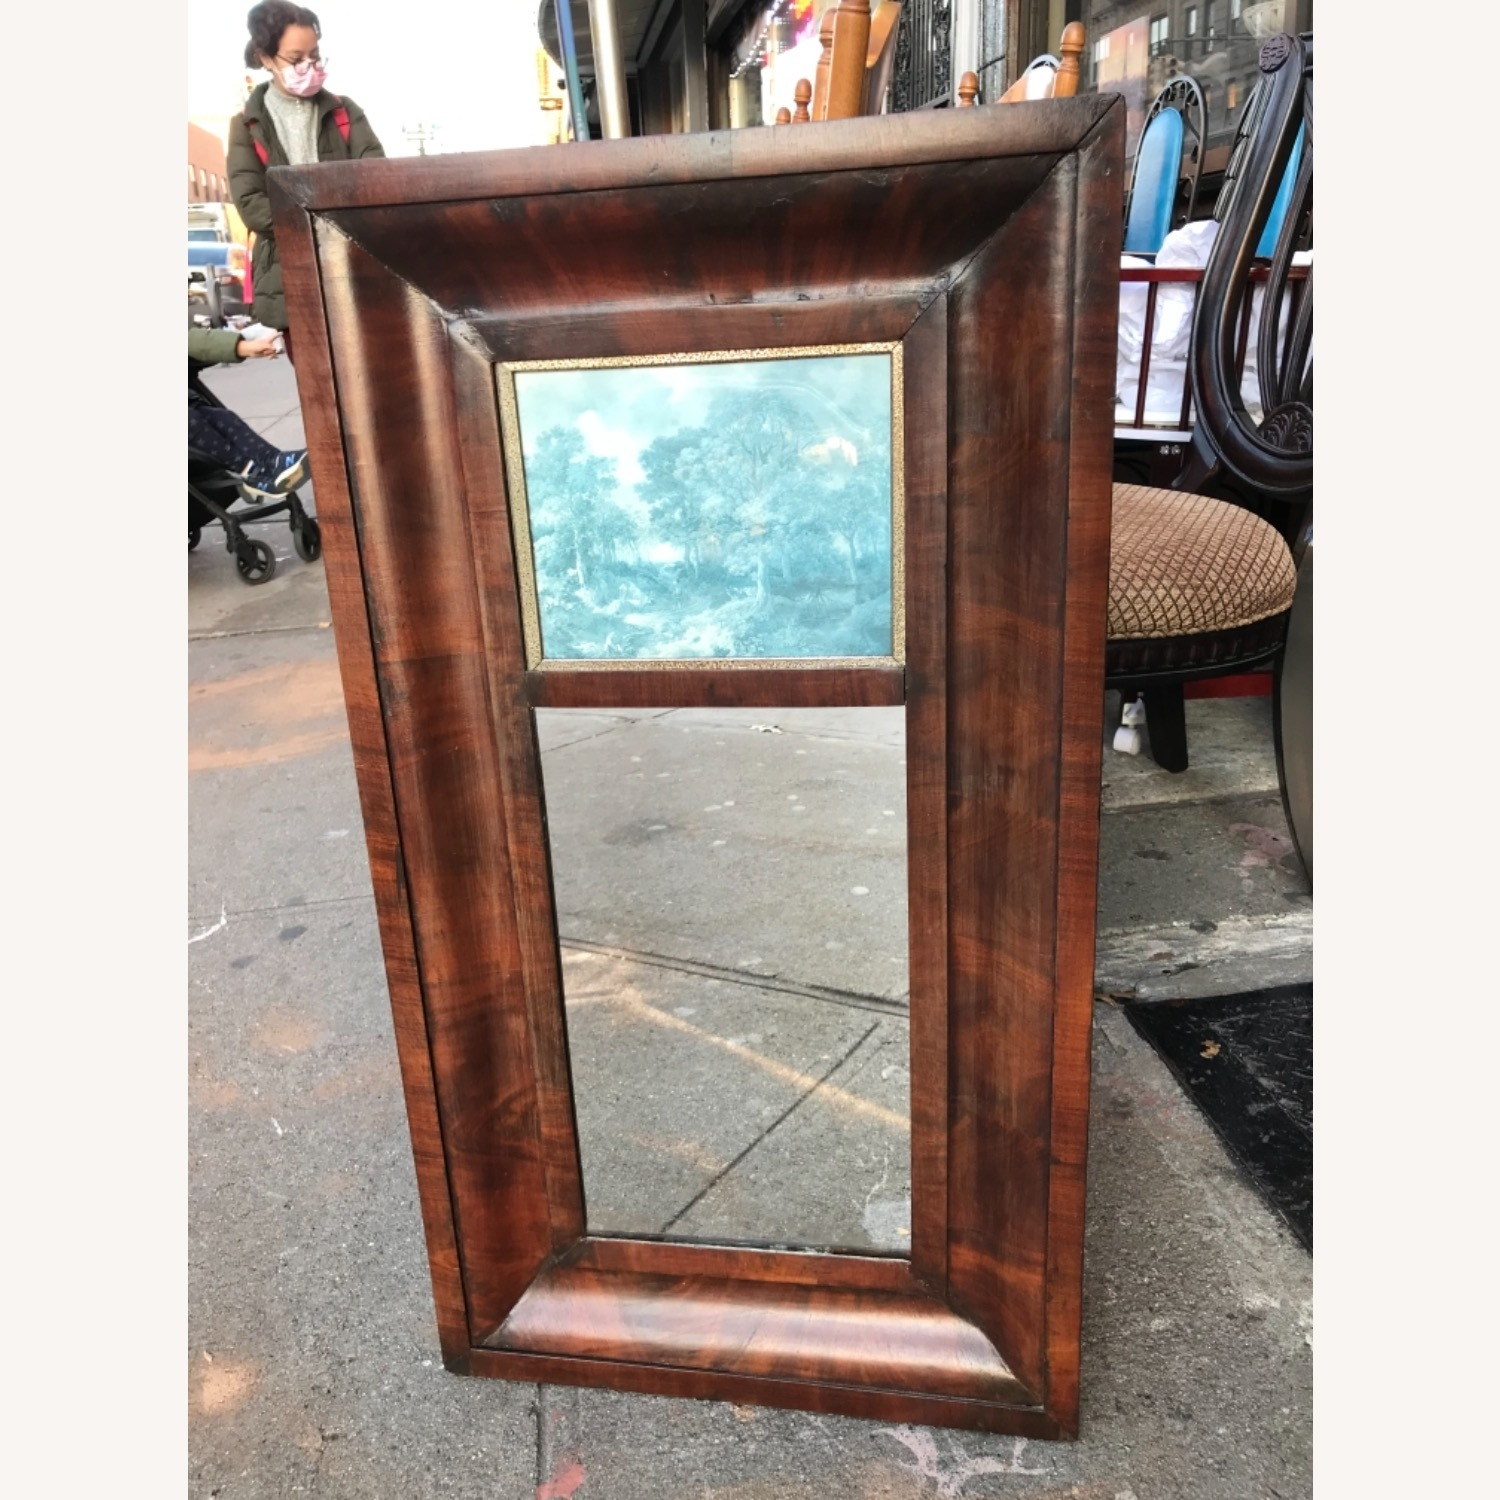 Antique 1900s Mahogany Framed Mirror w/ Picture - image-1